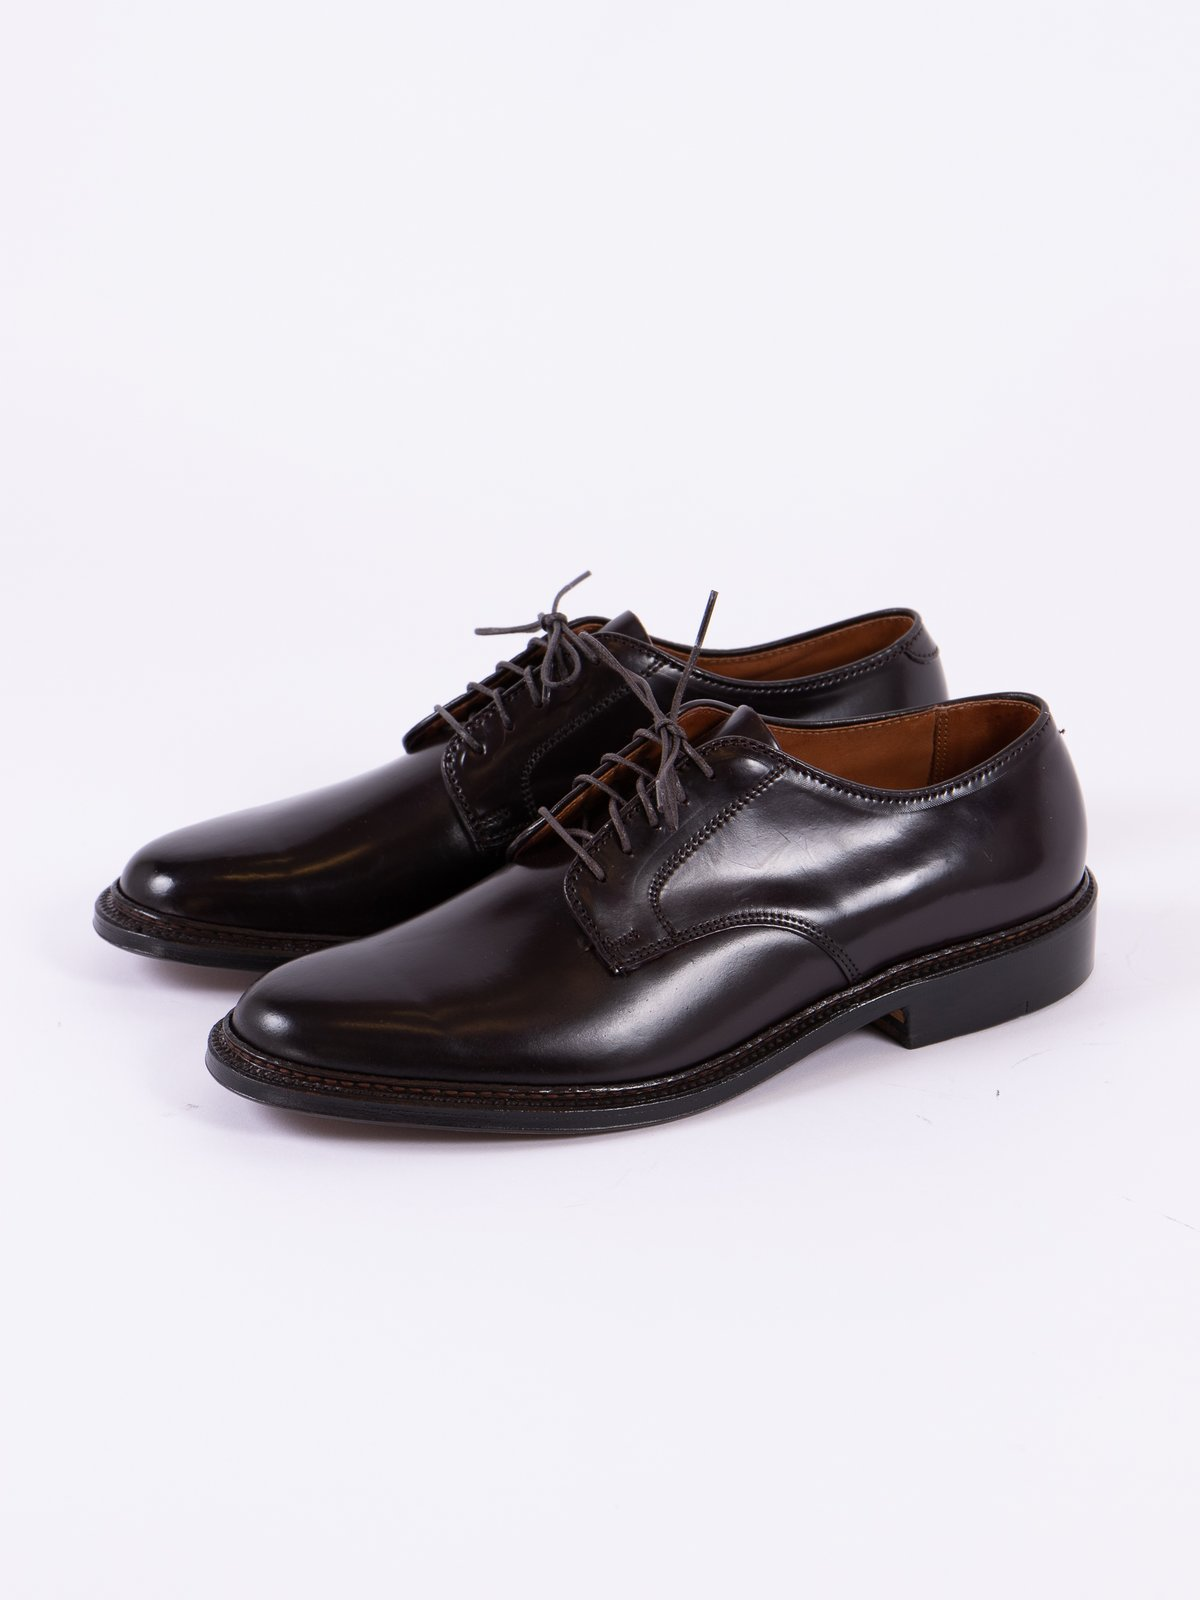 Color 8 Cordovan Plain Toe Blucher with Leather Sole - Image 2